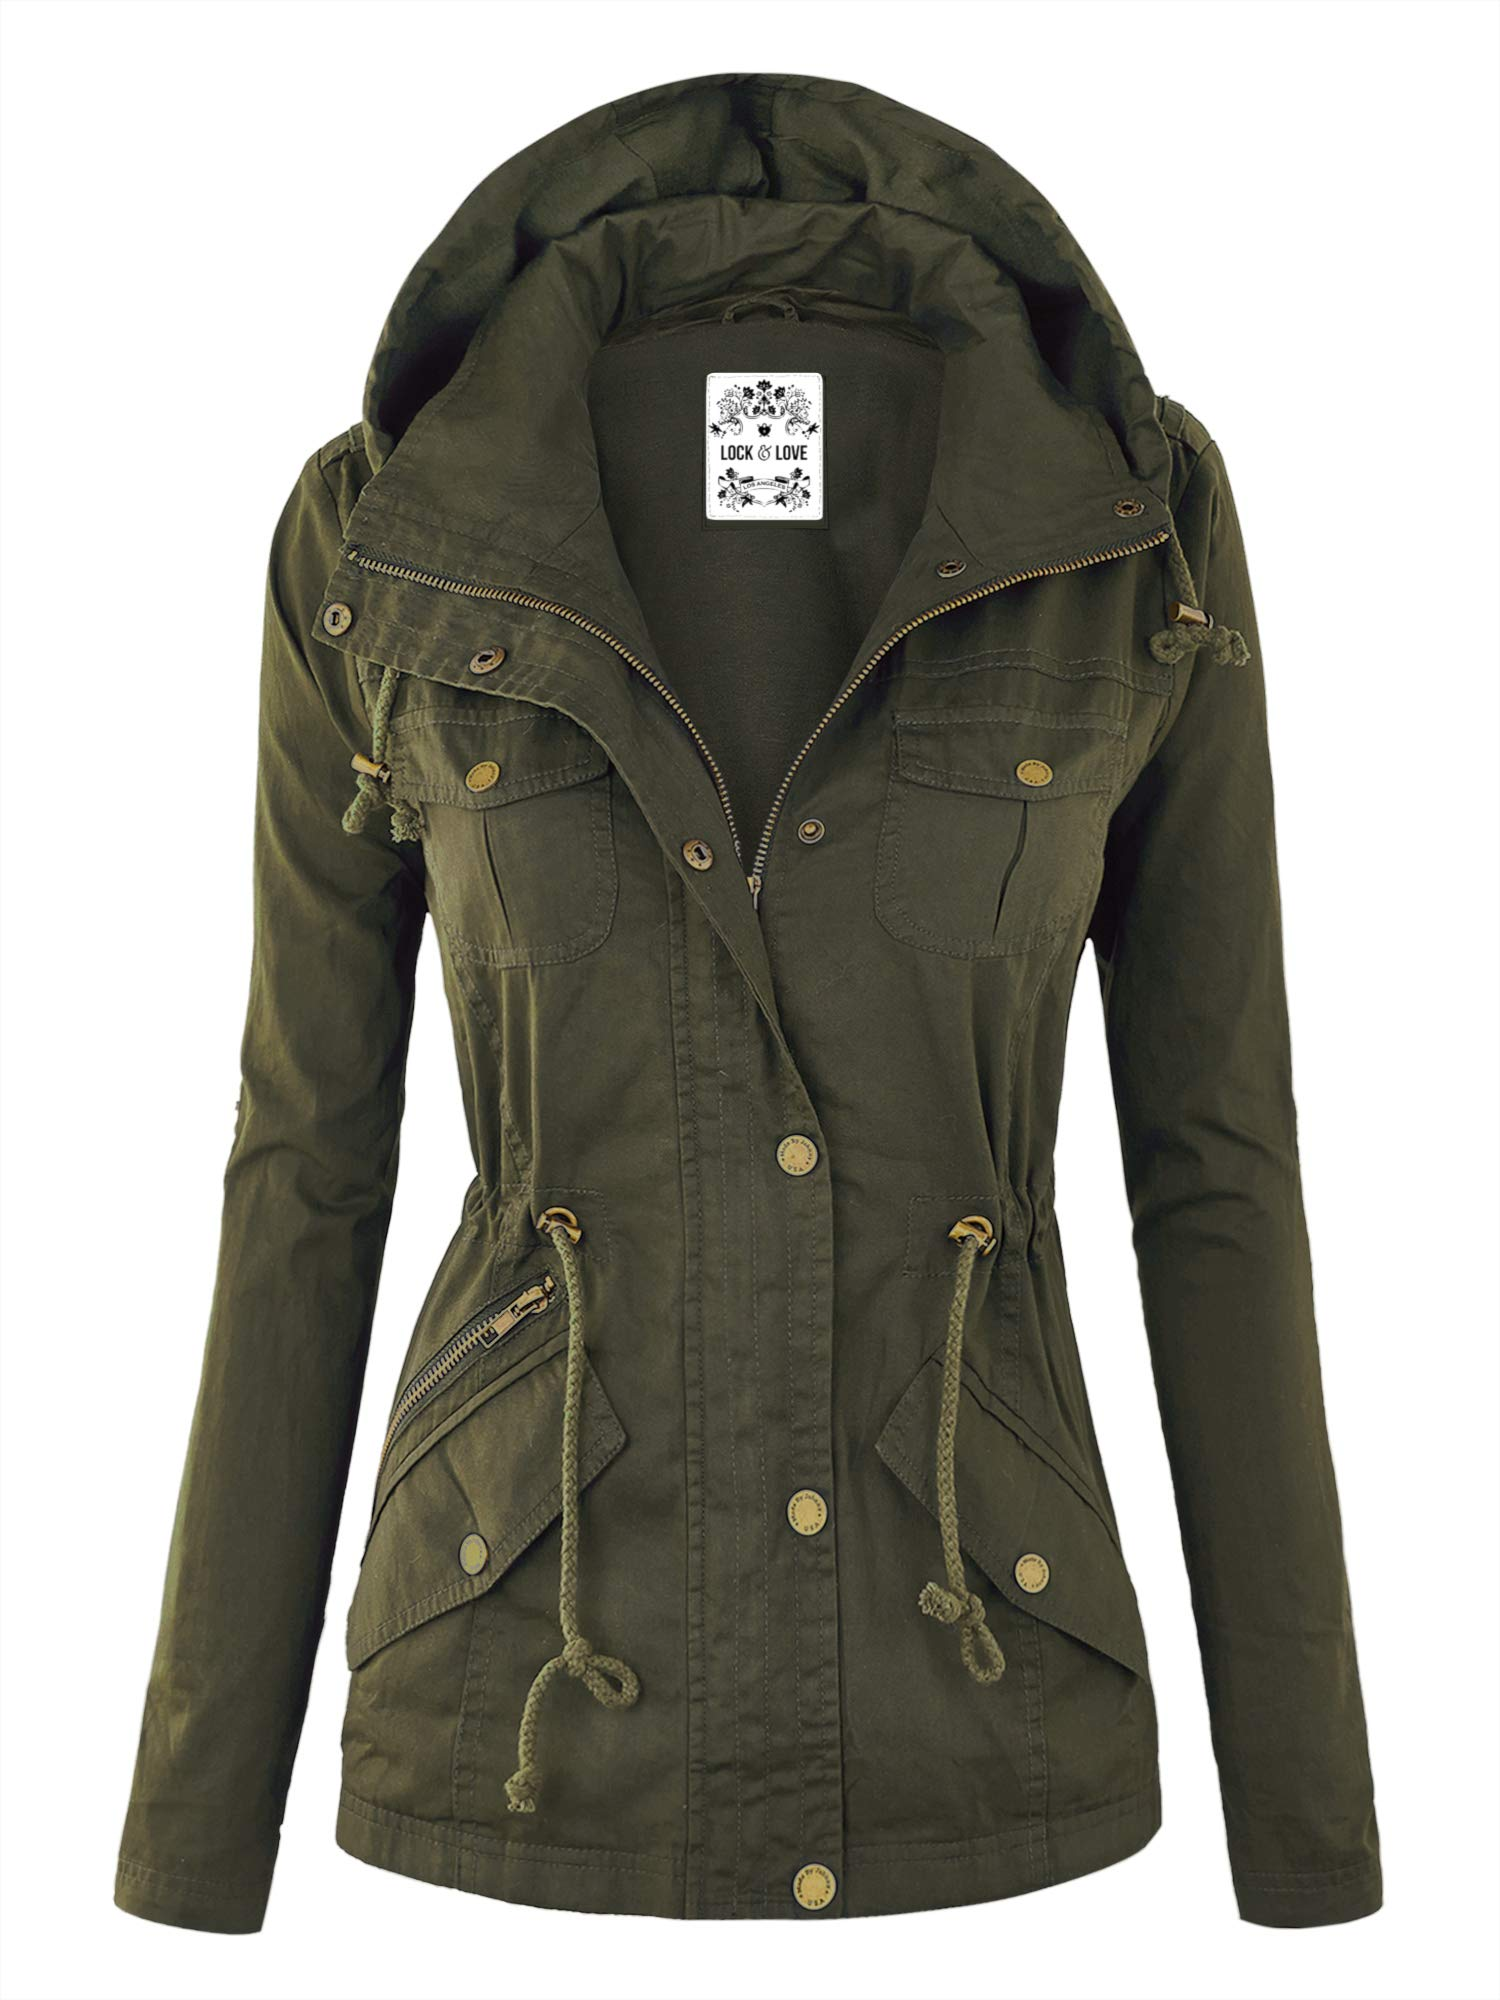 Lock and Love WJC643 Womens Pop of Color Parka Jacket XL Olive by Lock and Love